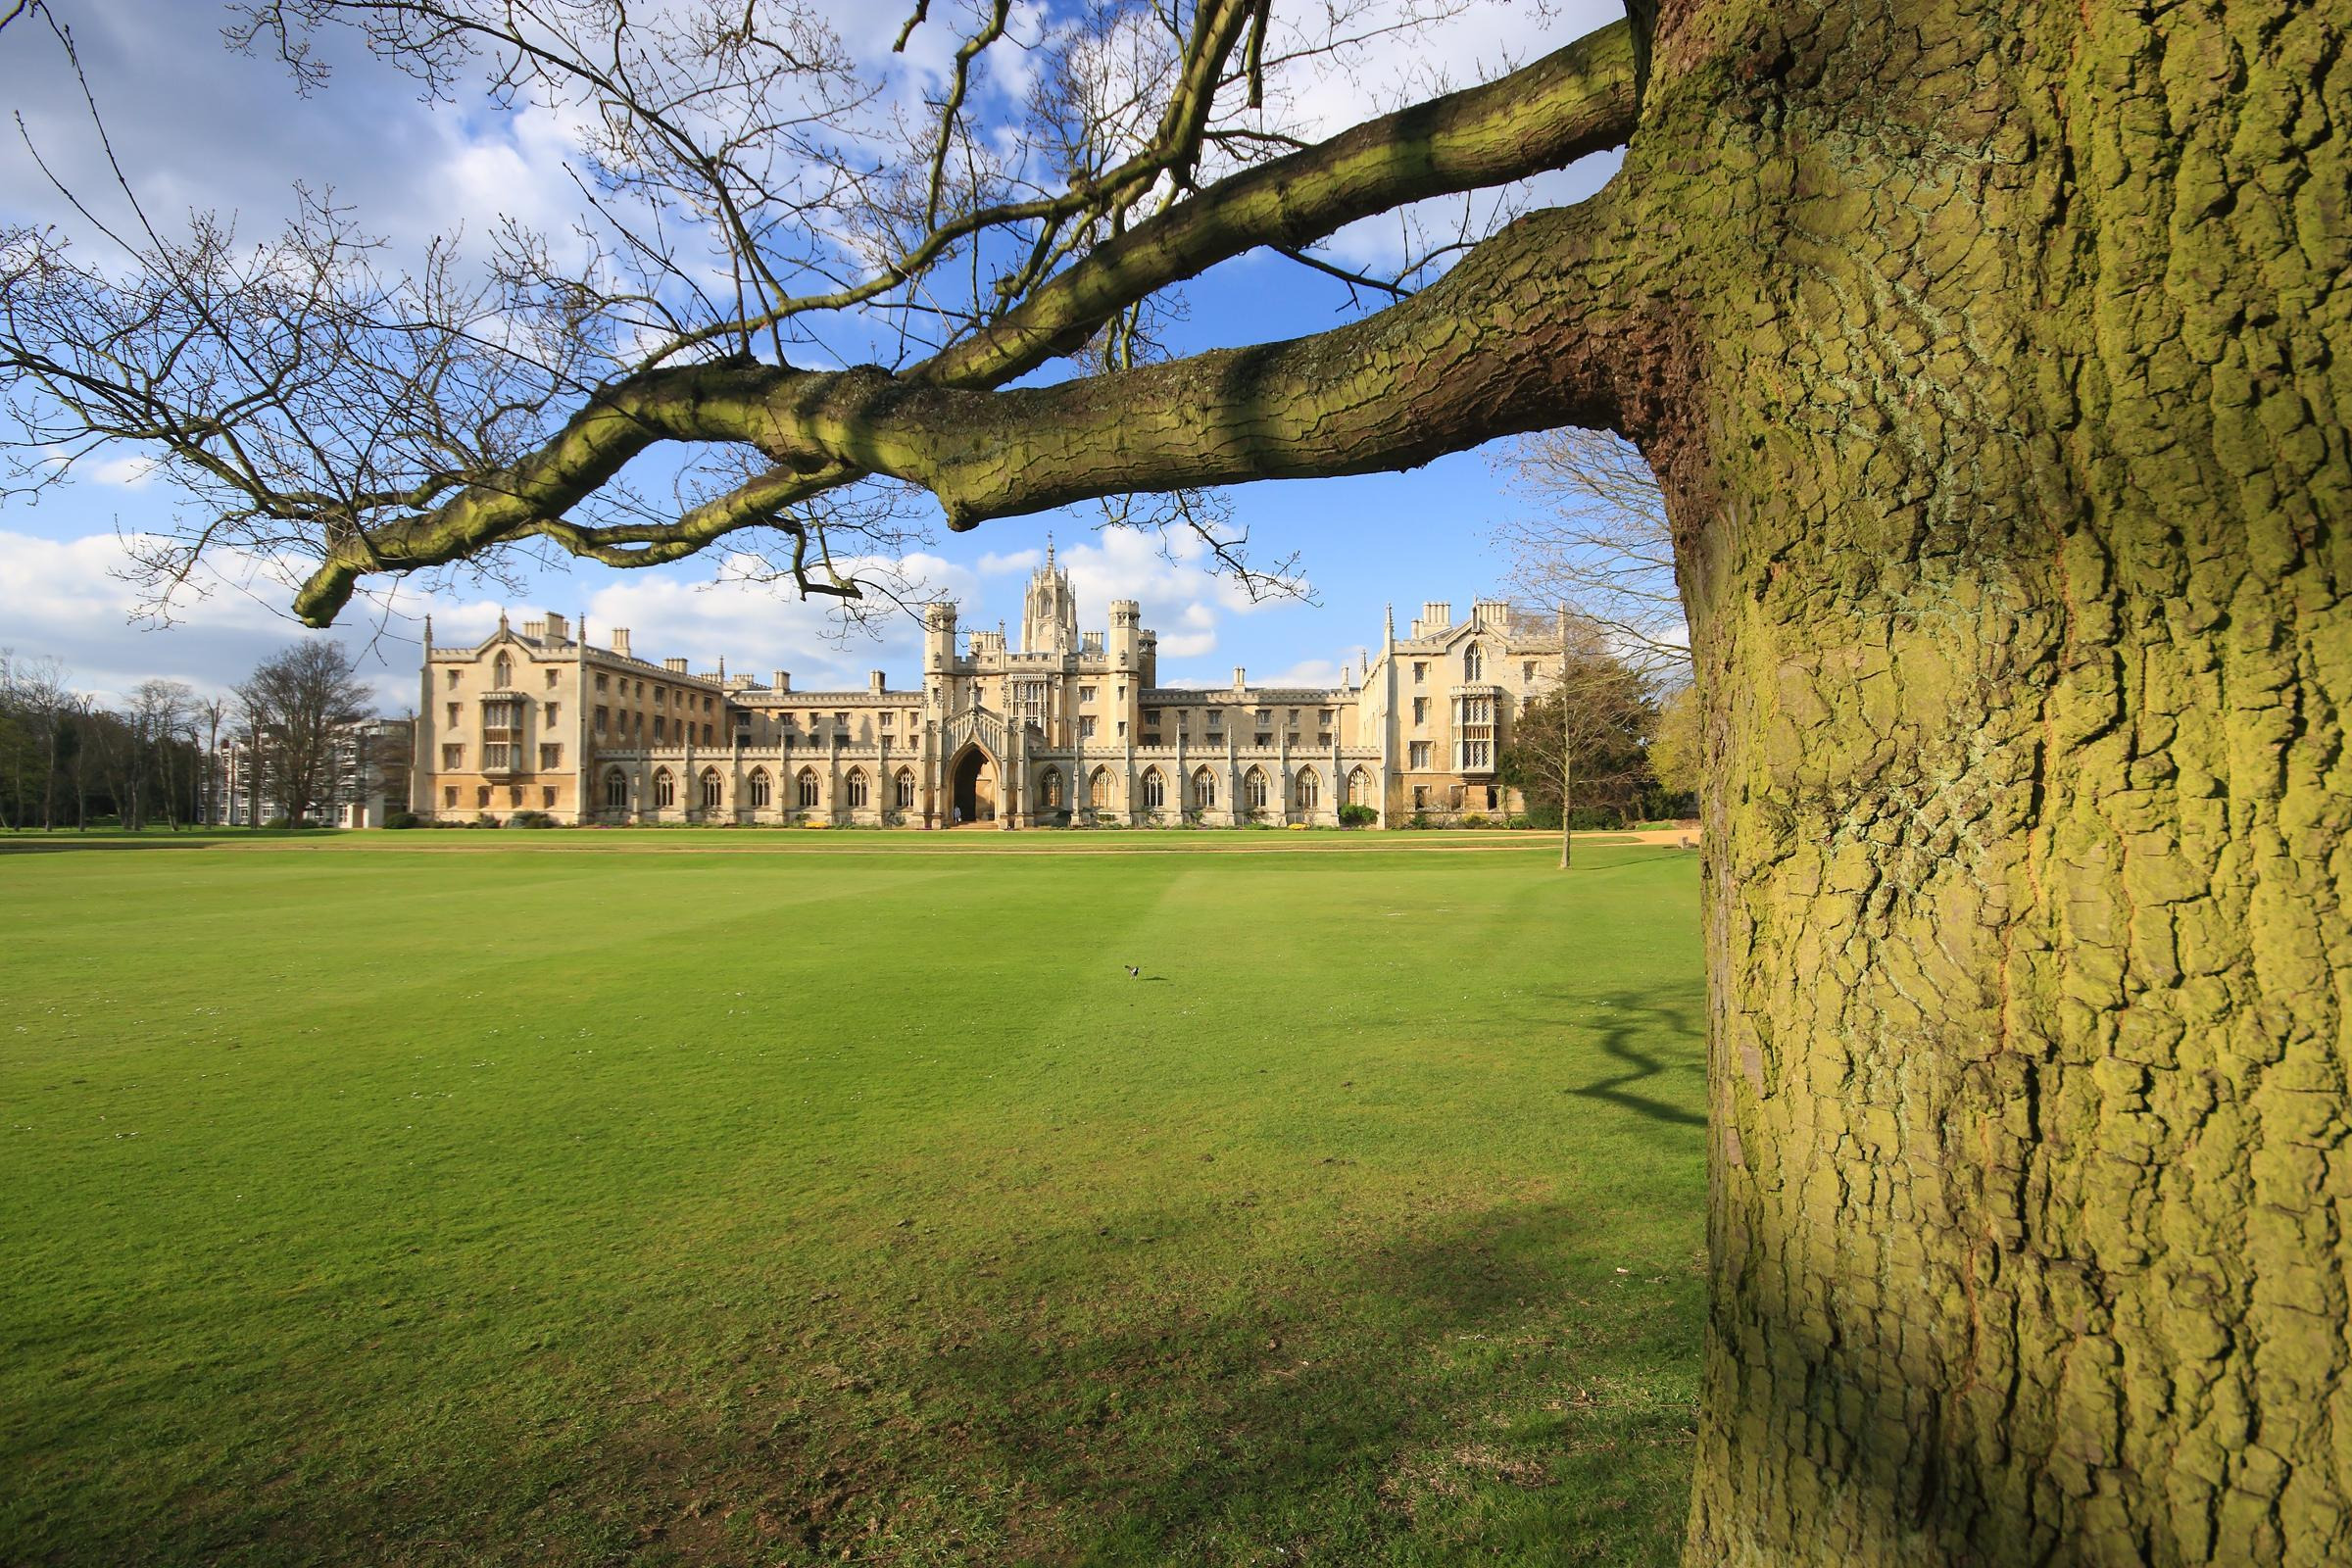 How to Spend 2 Days in Cambridge